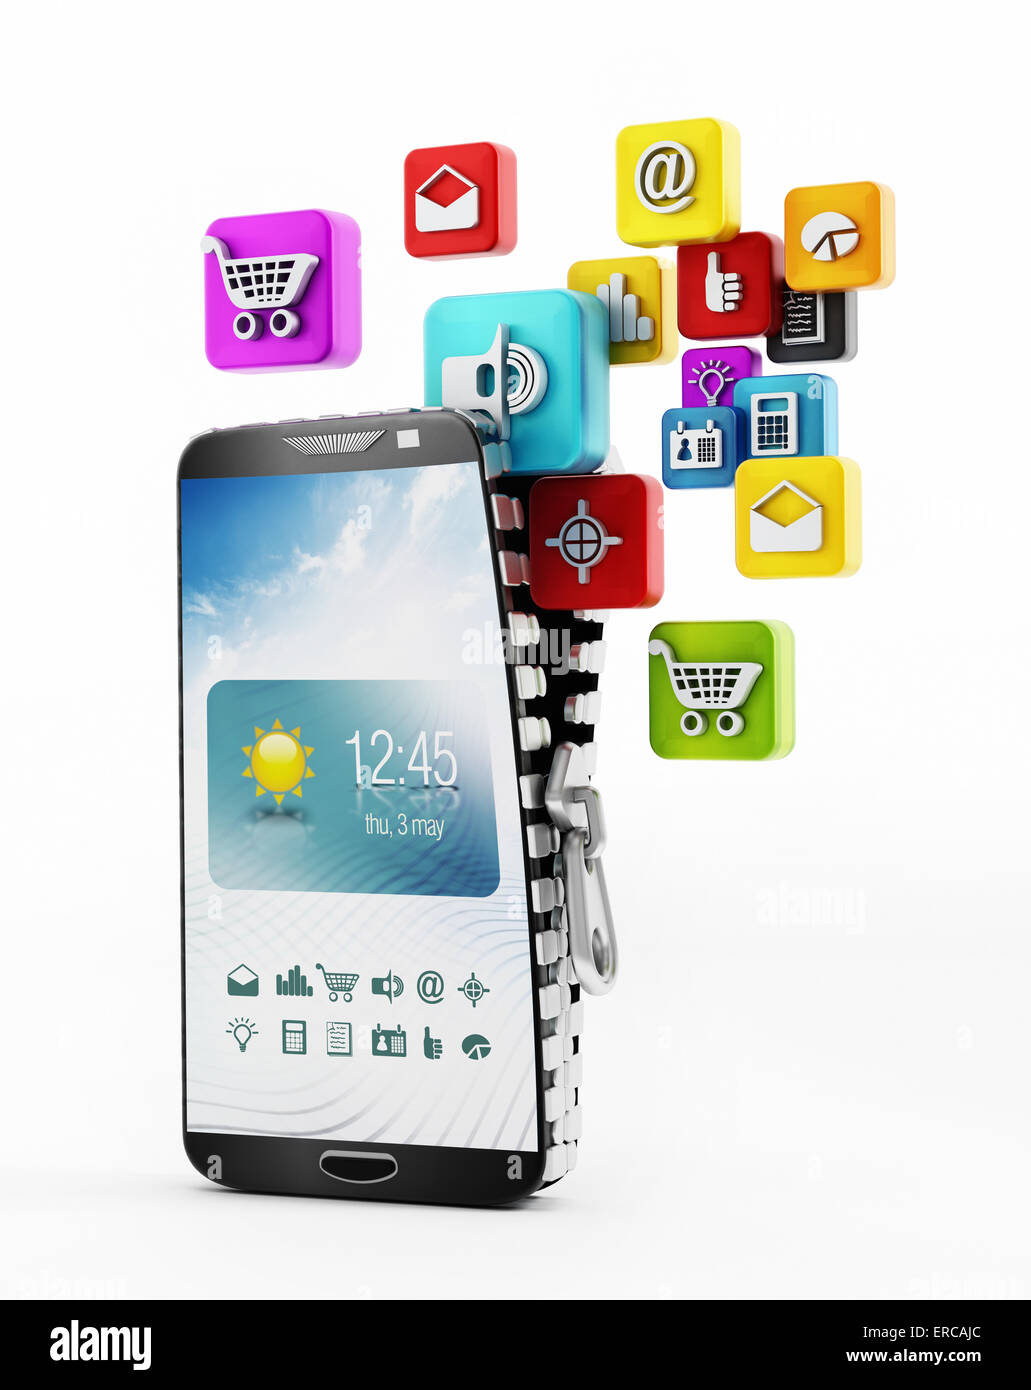 Applications downloading in smartphone - Stock Image